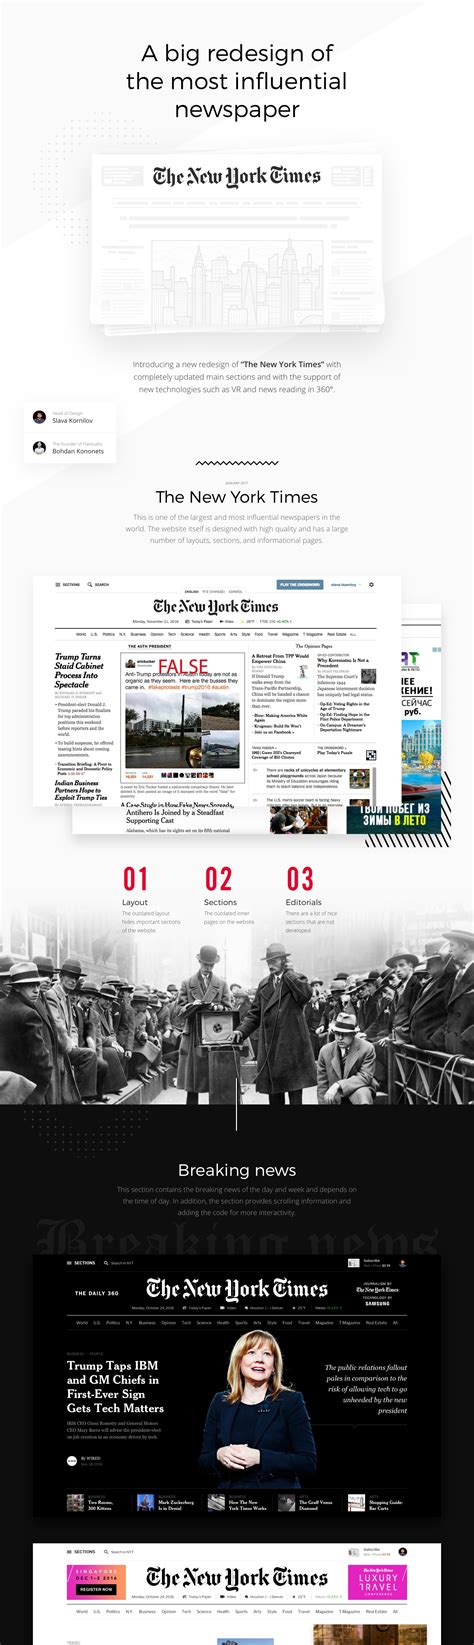 Design Editor New York Times | editorial design the new york times redesign concept